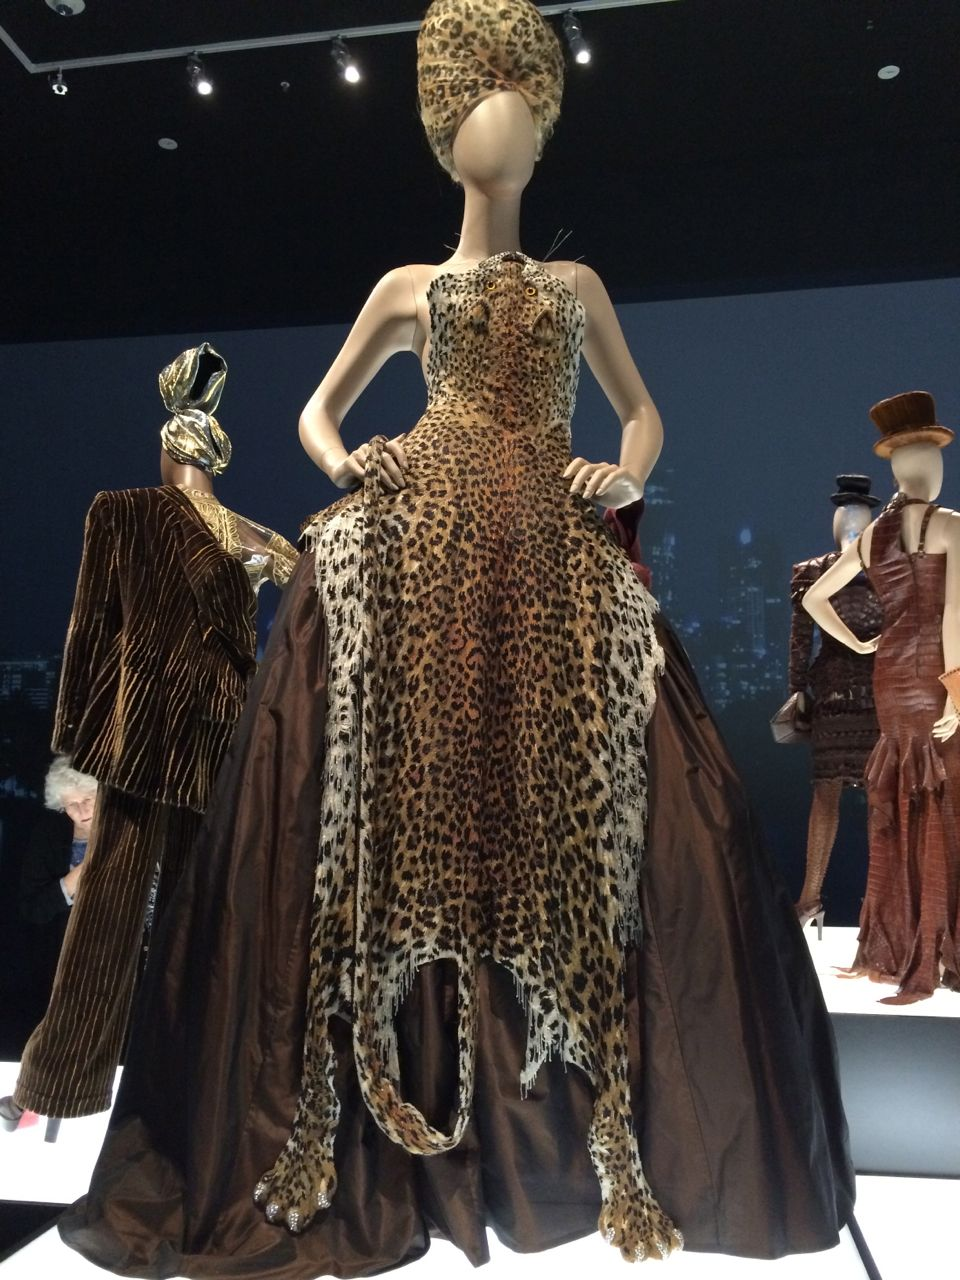 Amazing leopard dress. Love that leopard beehive! Photo by nazneenzainal.com